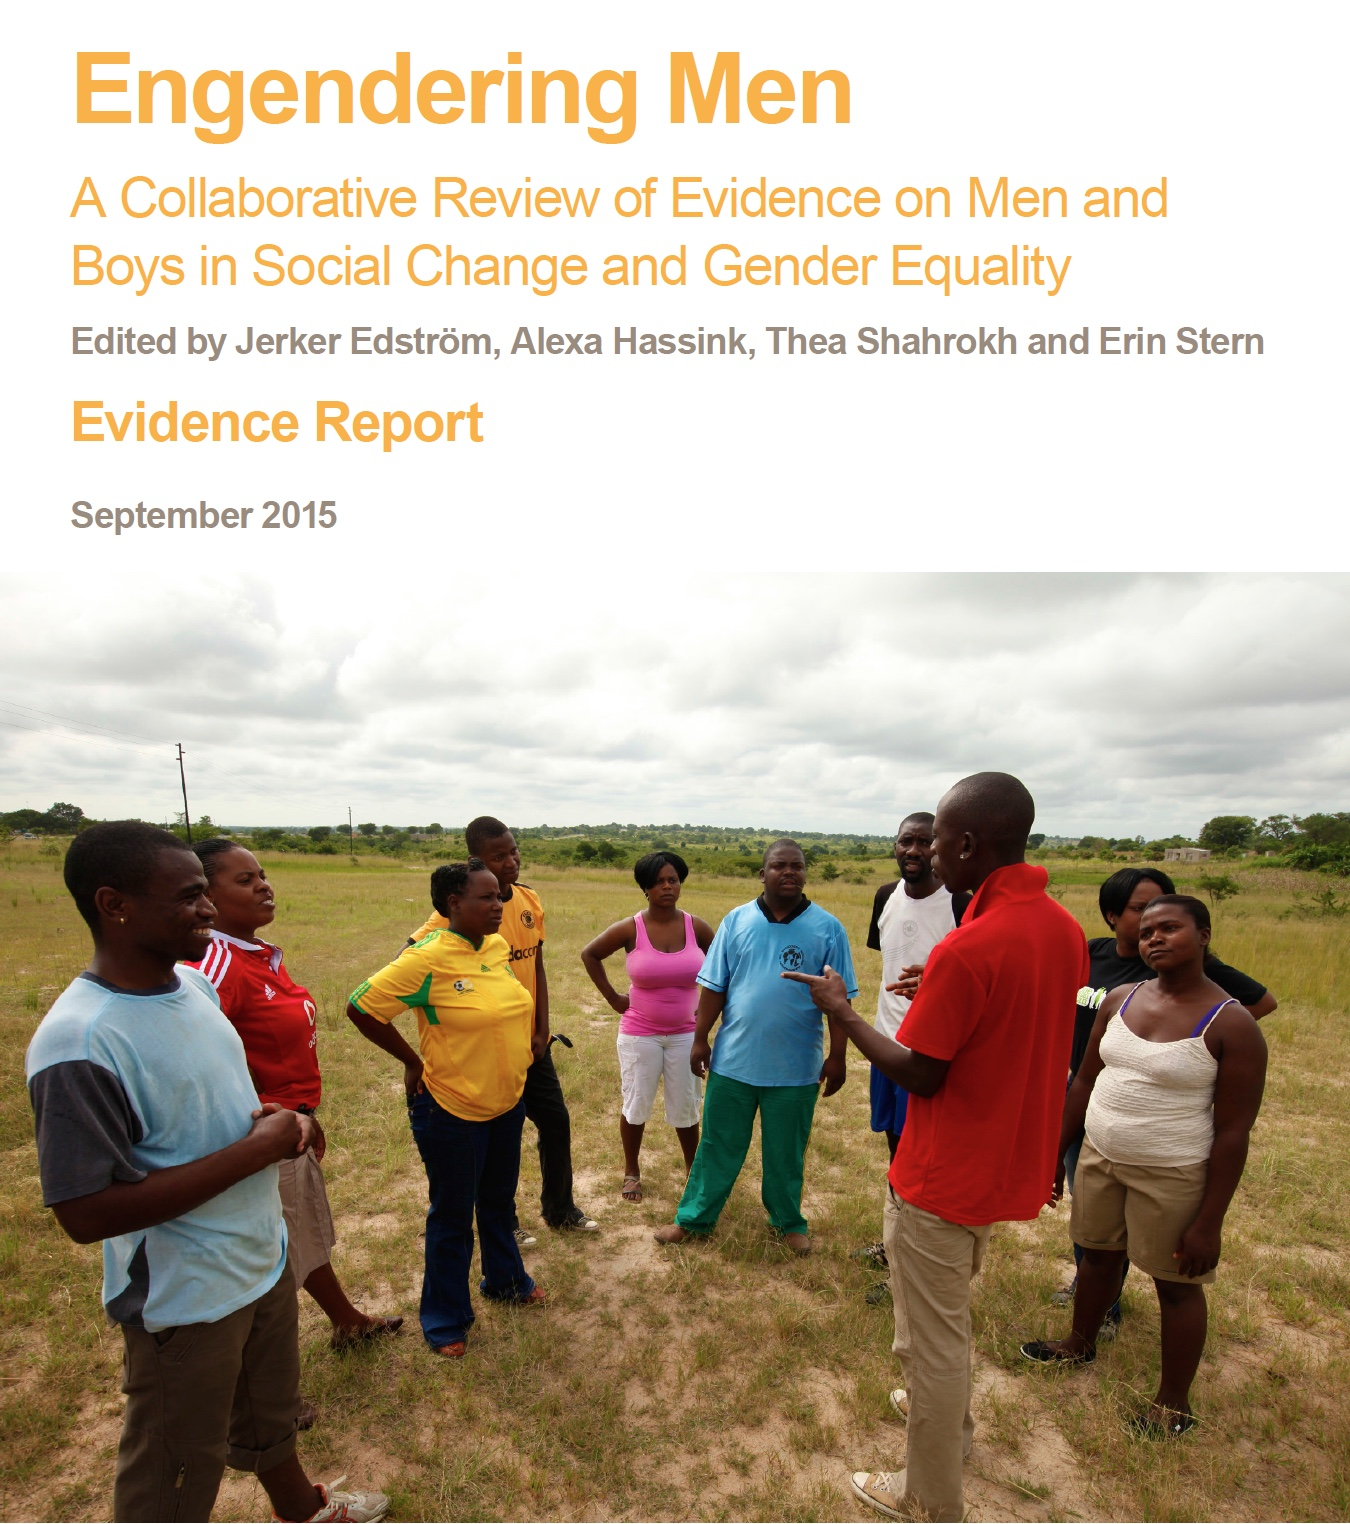 EMERGE, Collaborative Review of Evidence on Men and Boys - Evidence REPORT 2015 Cover